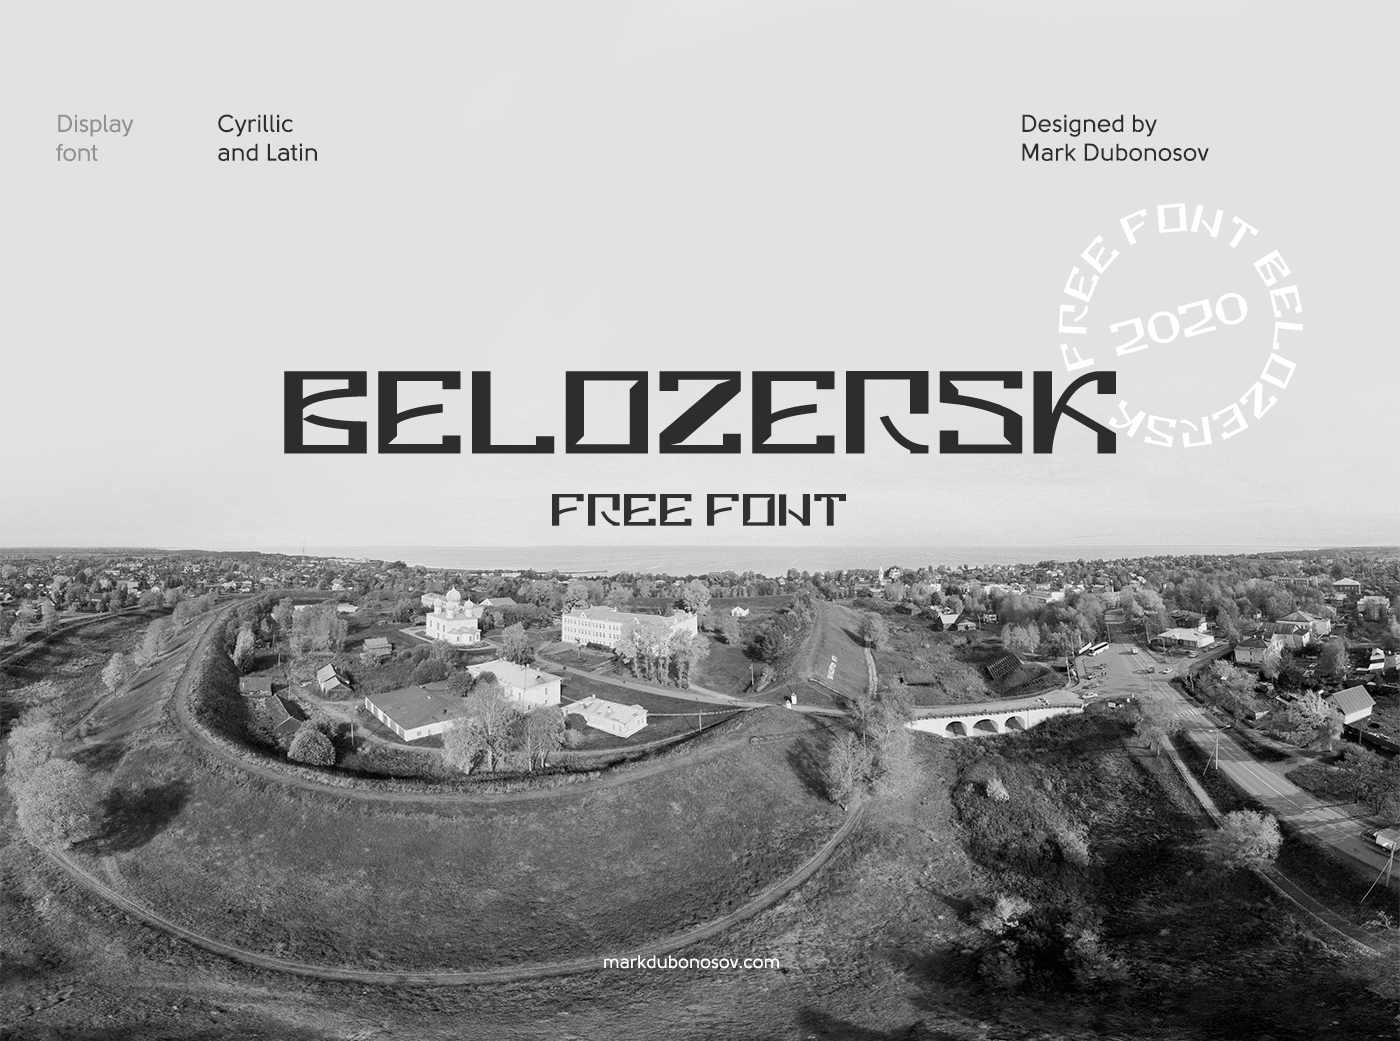 Belozersk Free Font - decorative-display, cyrillic